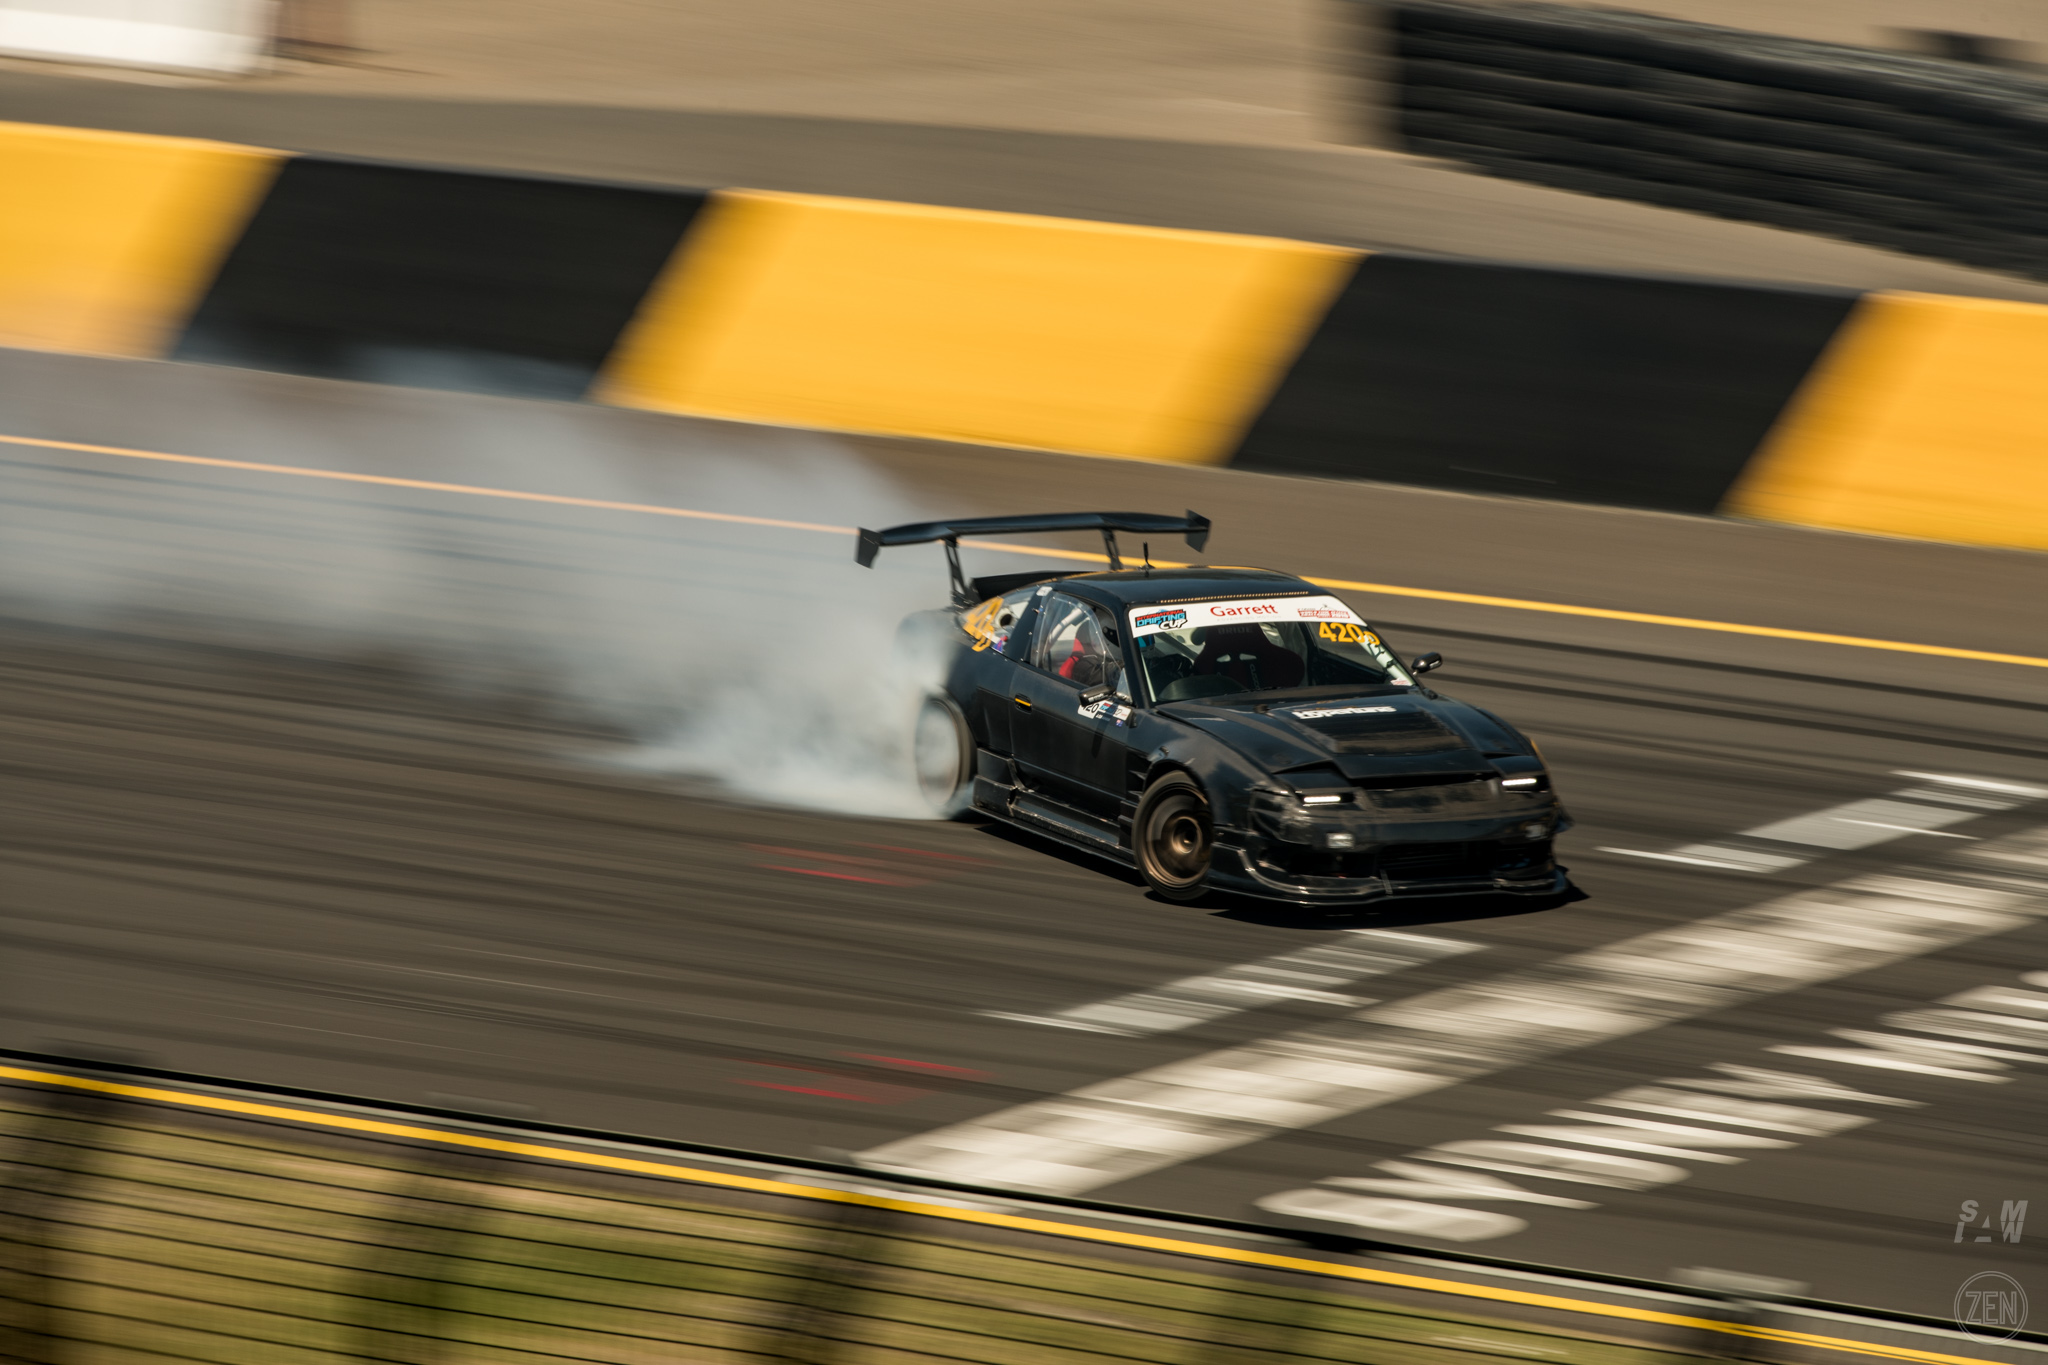 2019-10-18 - WTAC Day 01 045